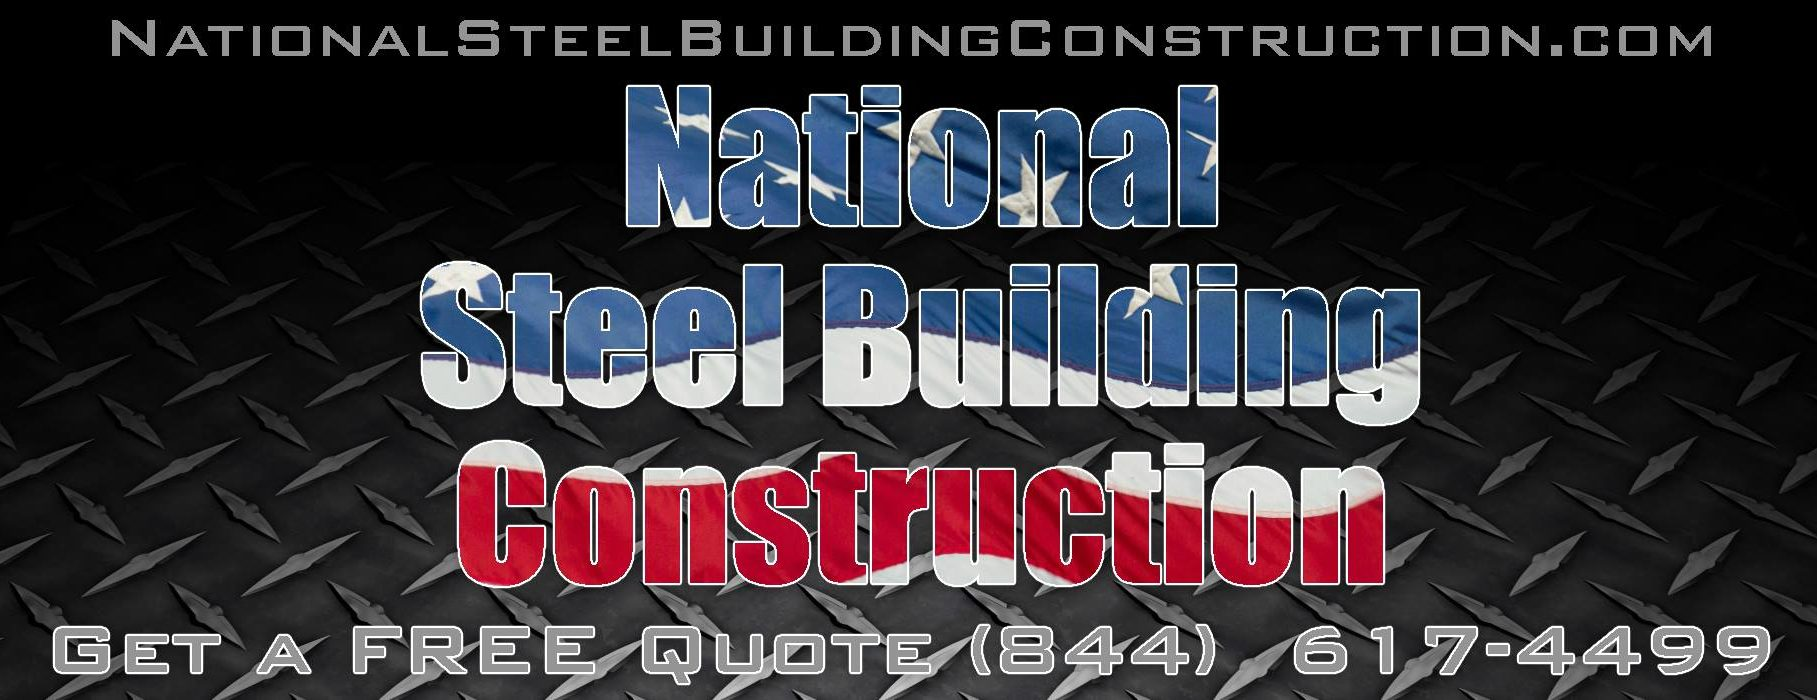 national steel building construction